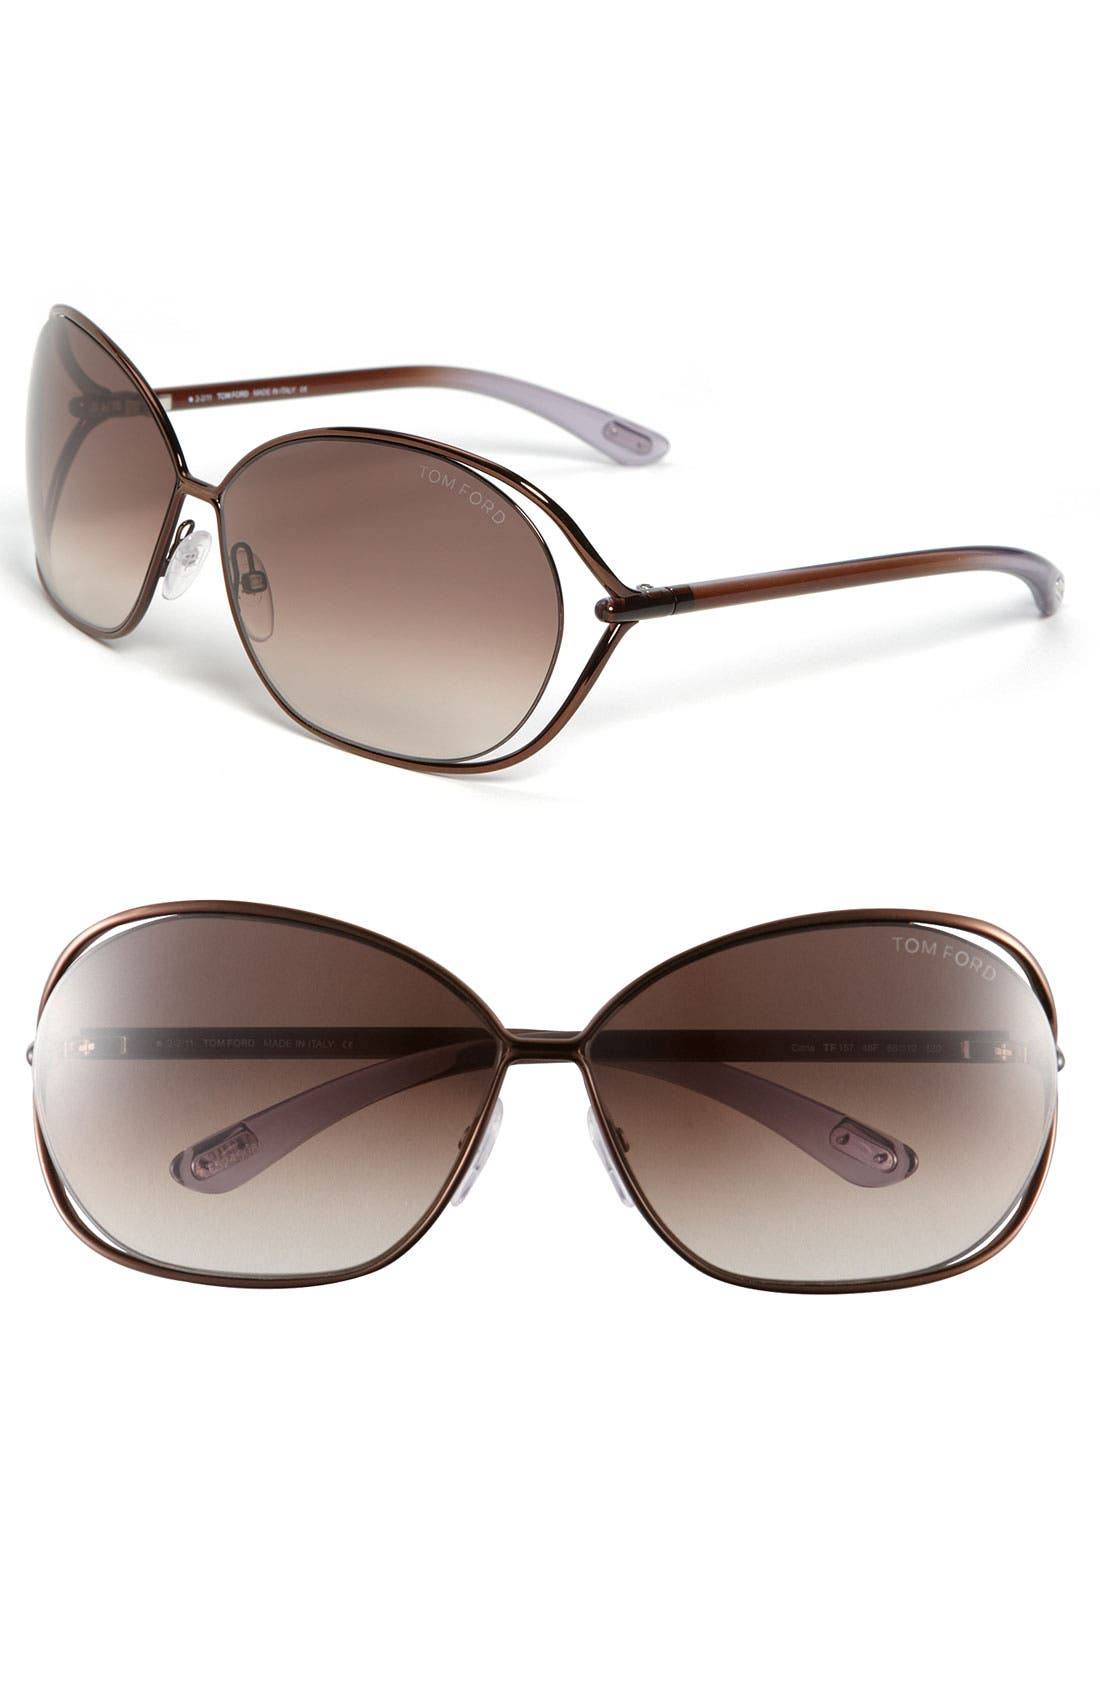 Carla 66mm Oversized Round Metal Sunglasses,                             Main thumbnail 1, color,                             BROWN/ BROWN